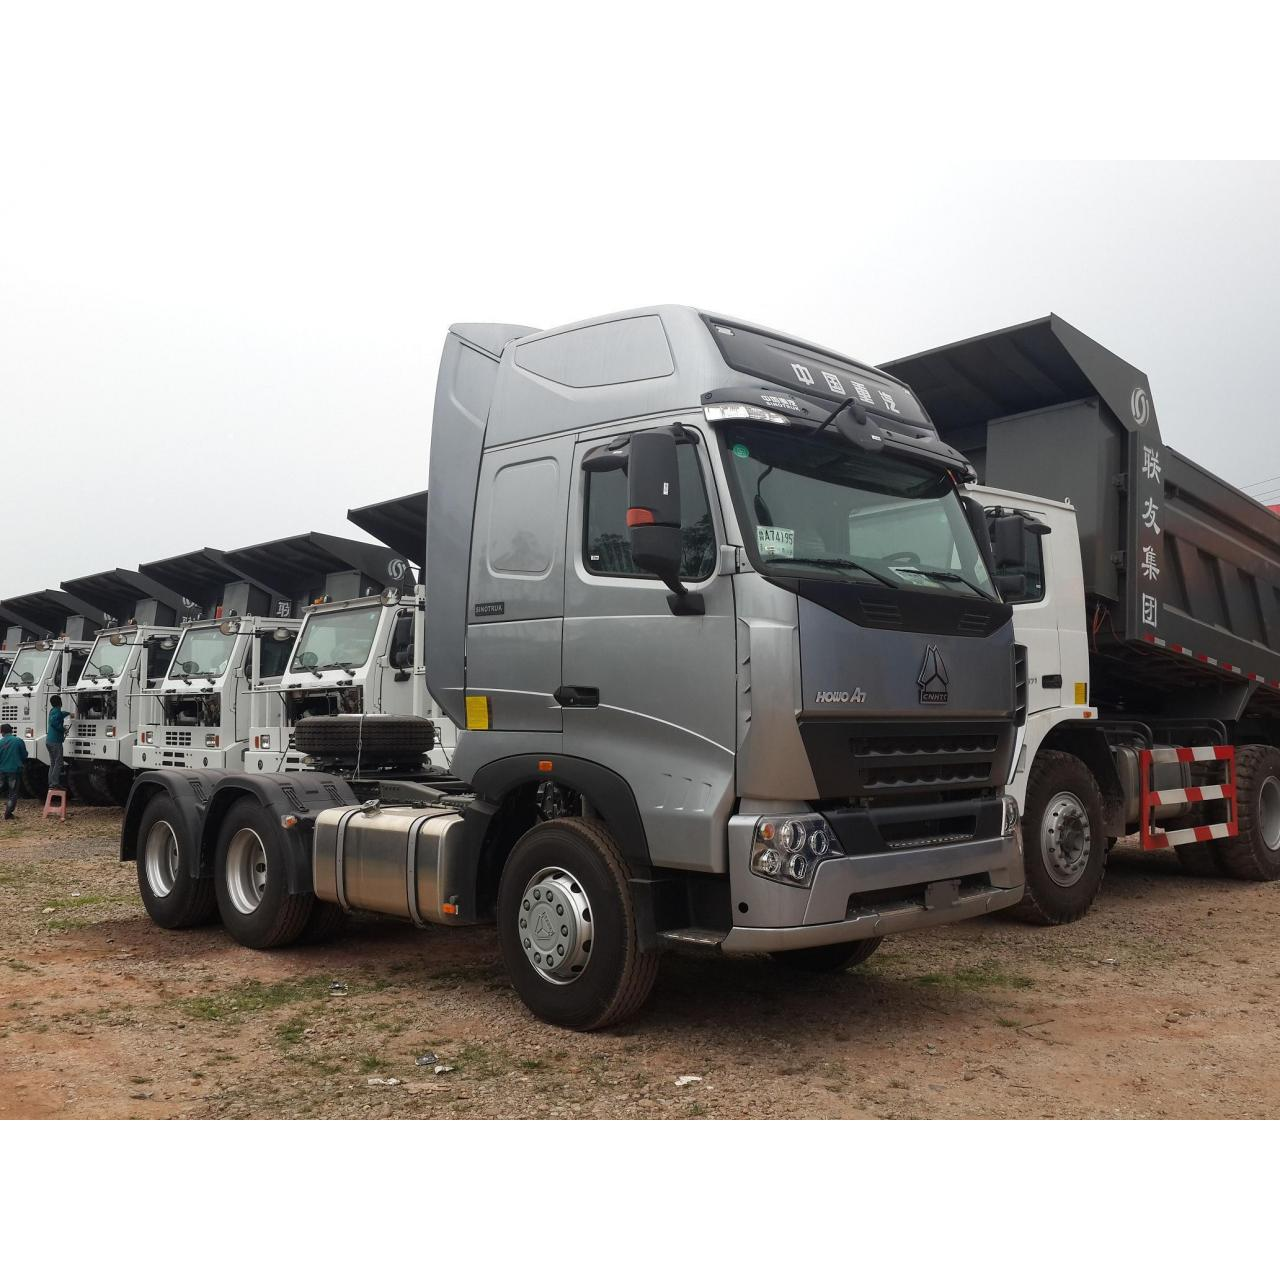 HOT(16) SINOTRUK HOWO-A7 Tractor Truck